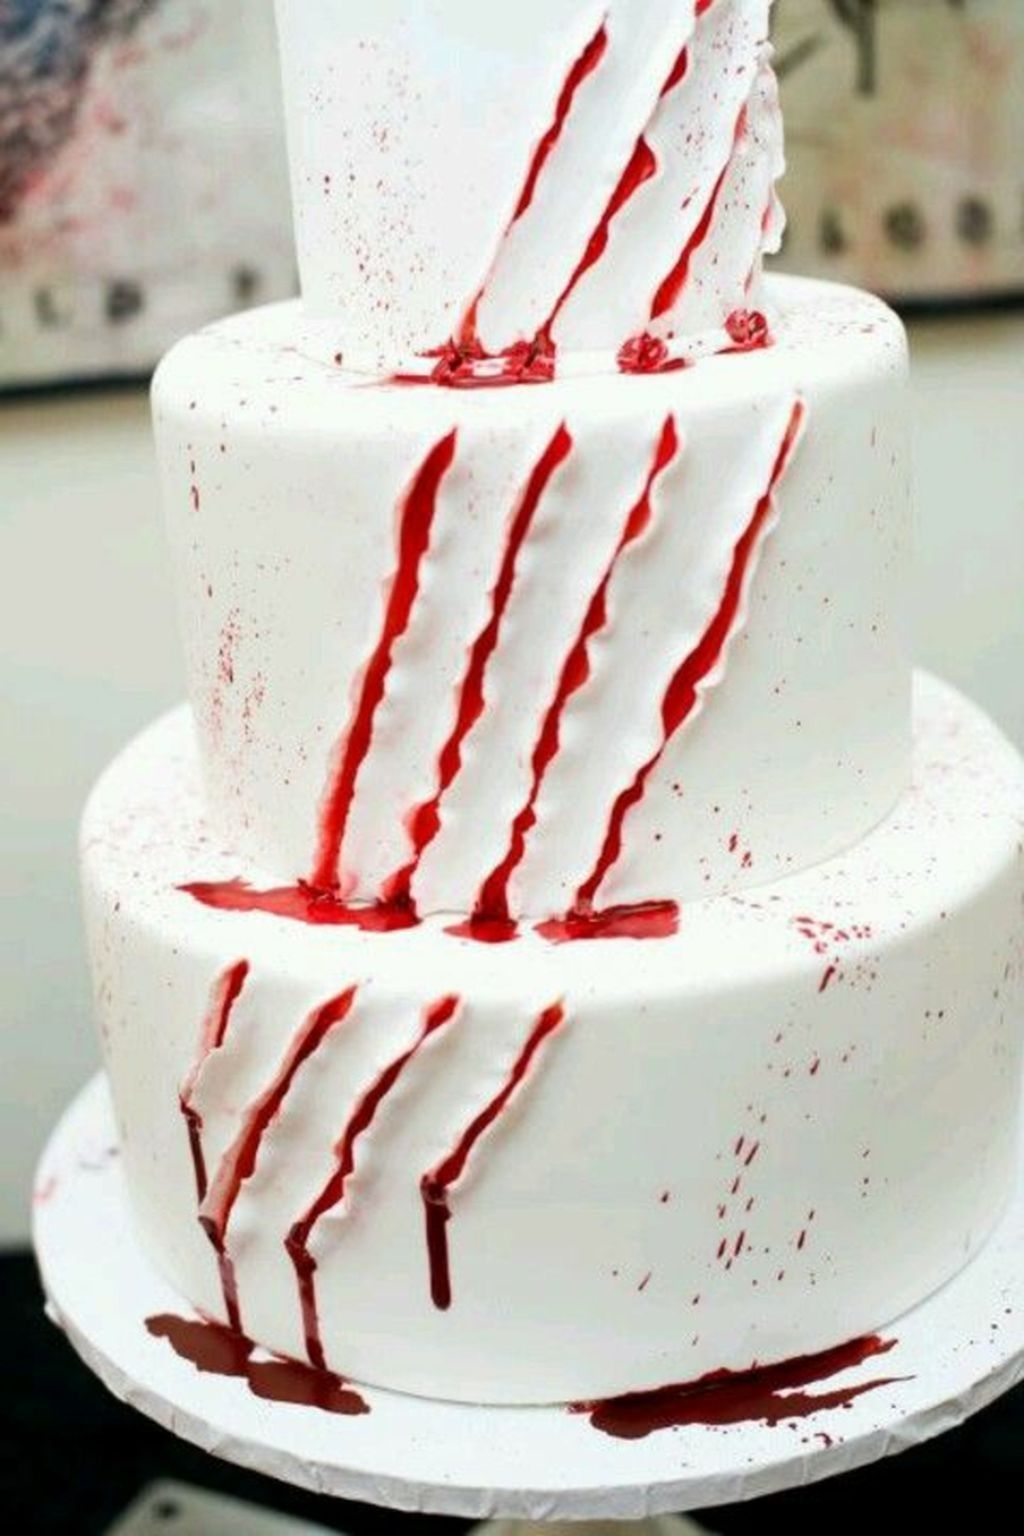 75 Lovelly Halloween Themed Wedding Cake Ideas You Will Totally Love ...